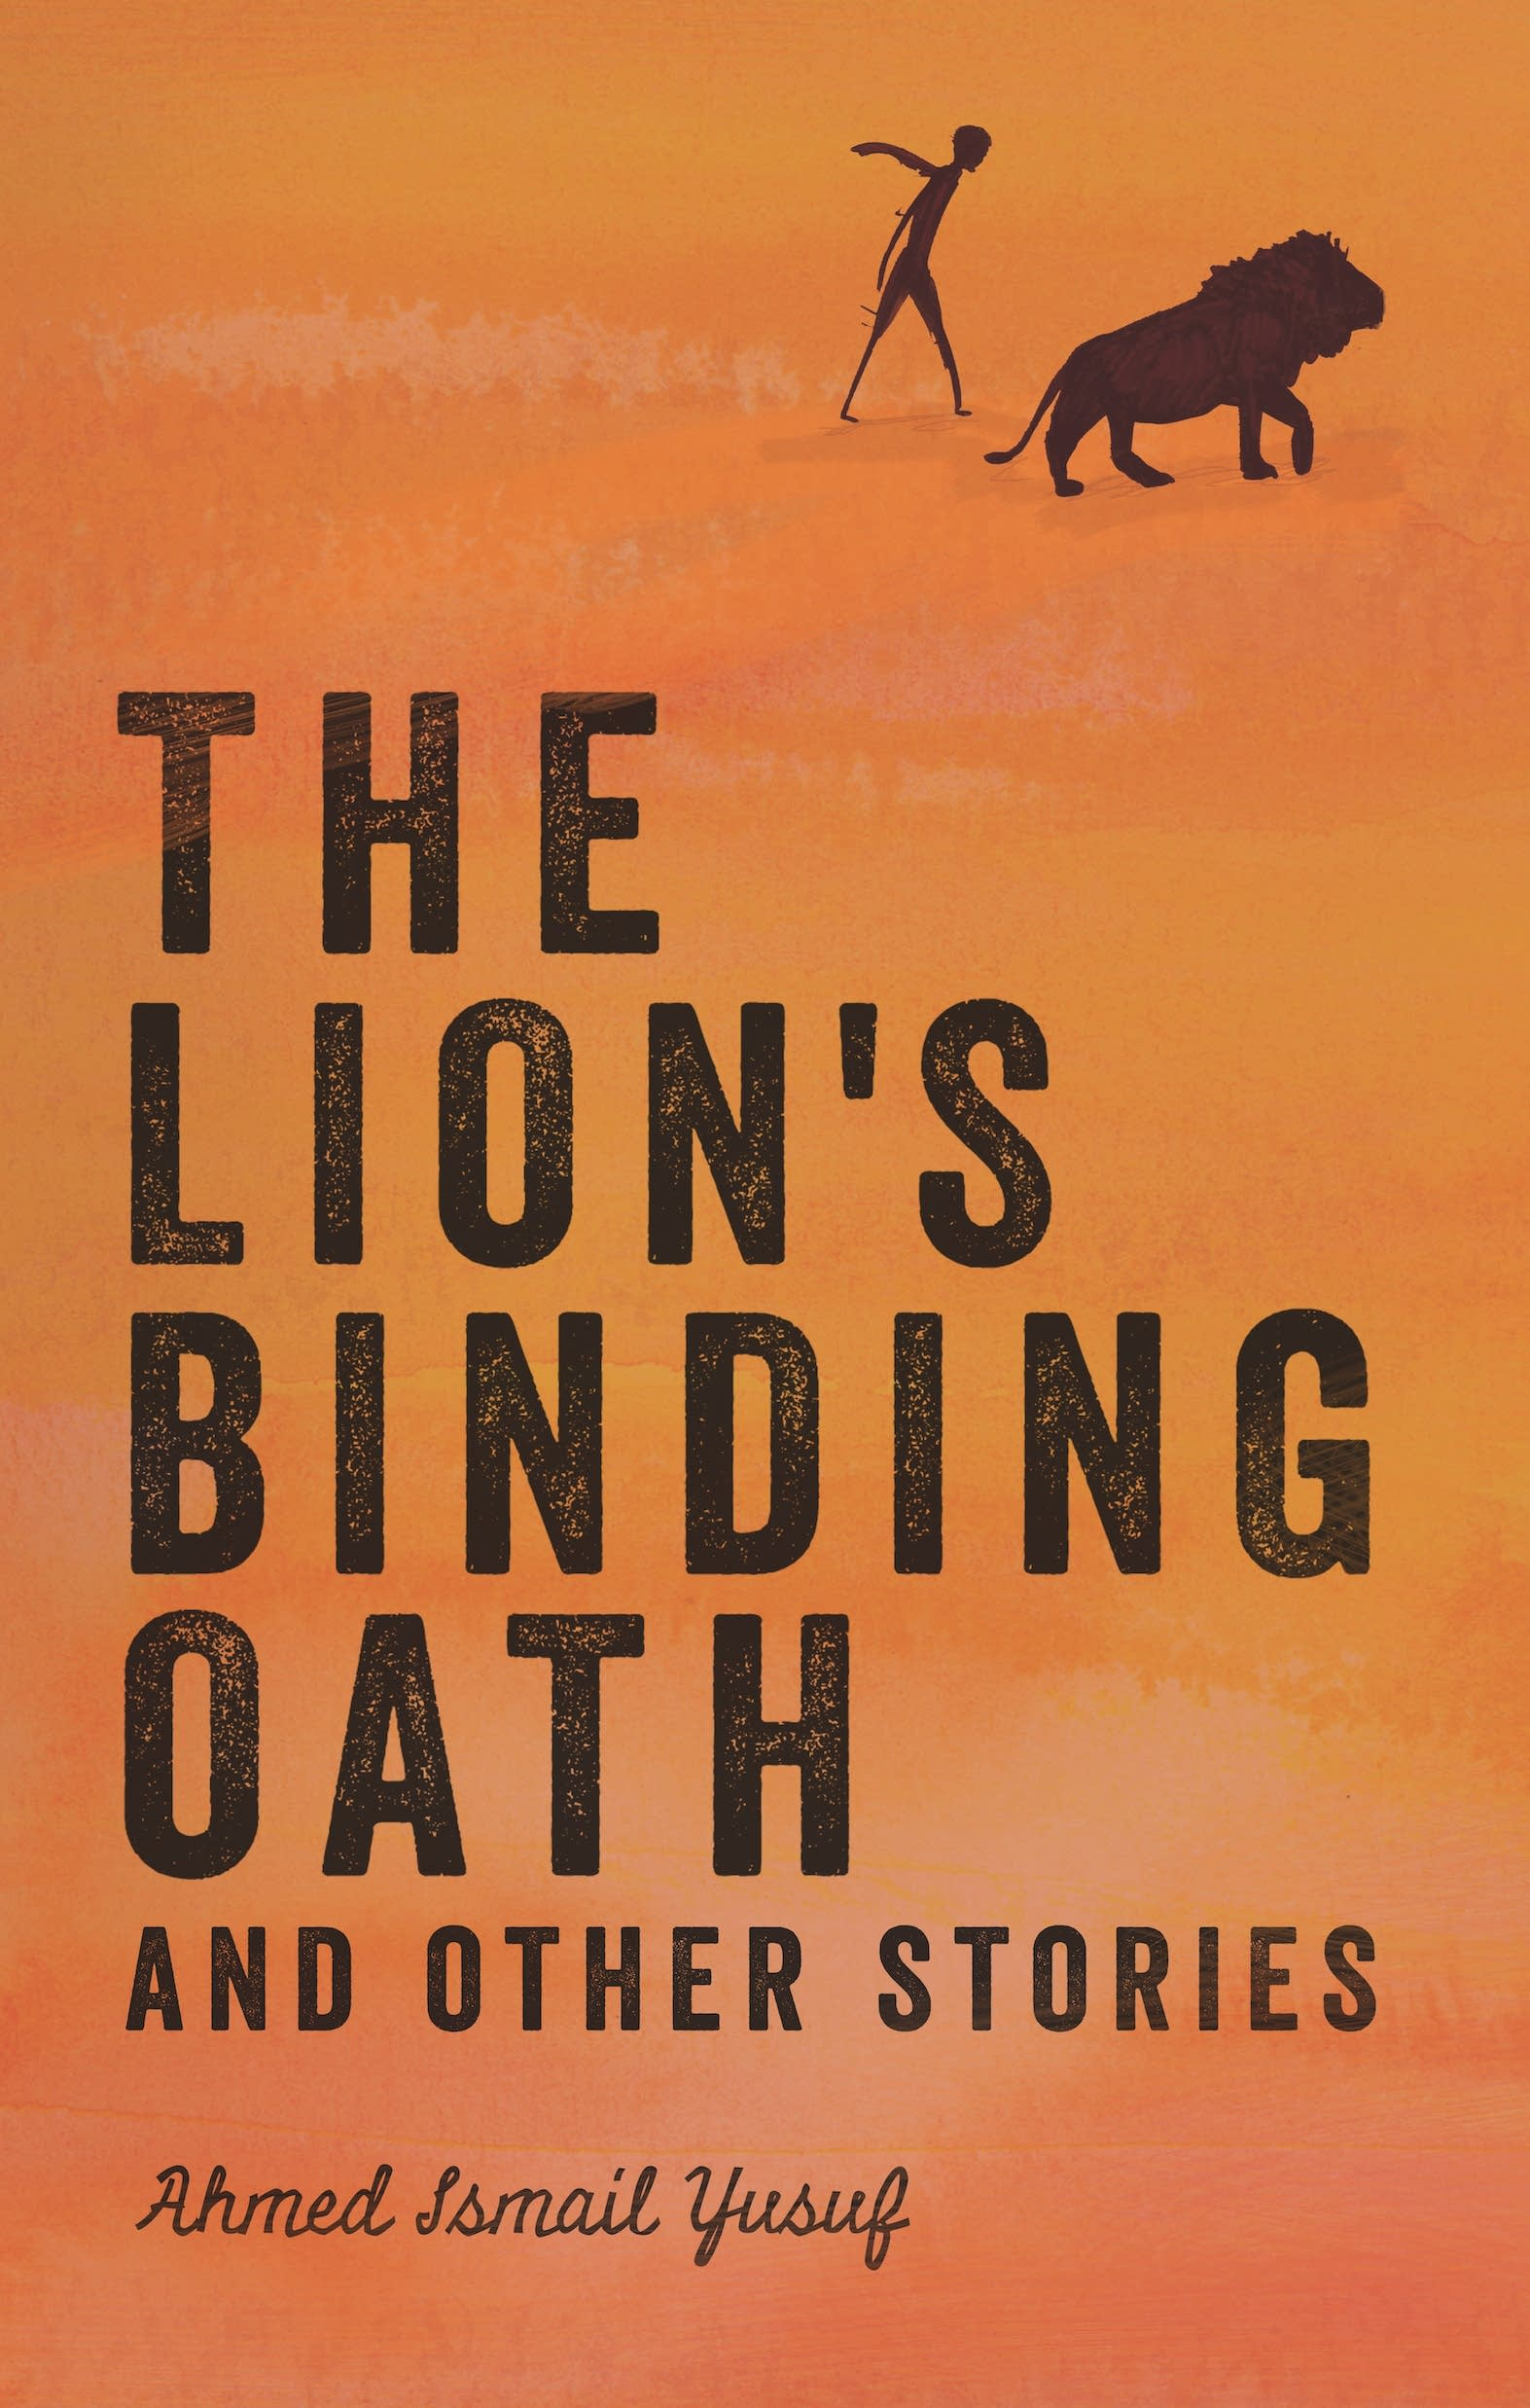 'The Lion's Binding Oath and other stories' by Ahmed Ismail Yusuf